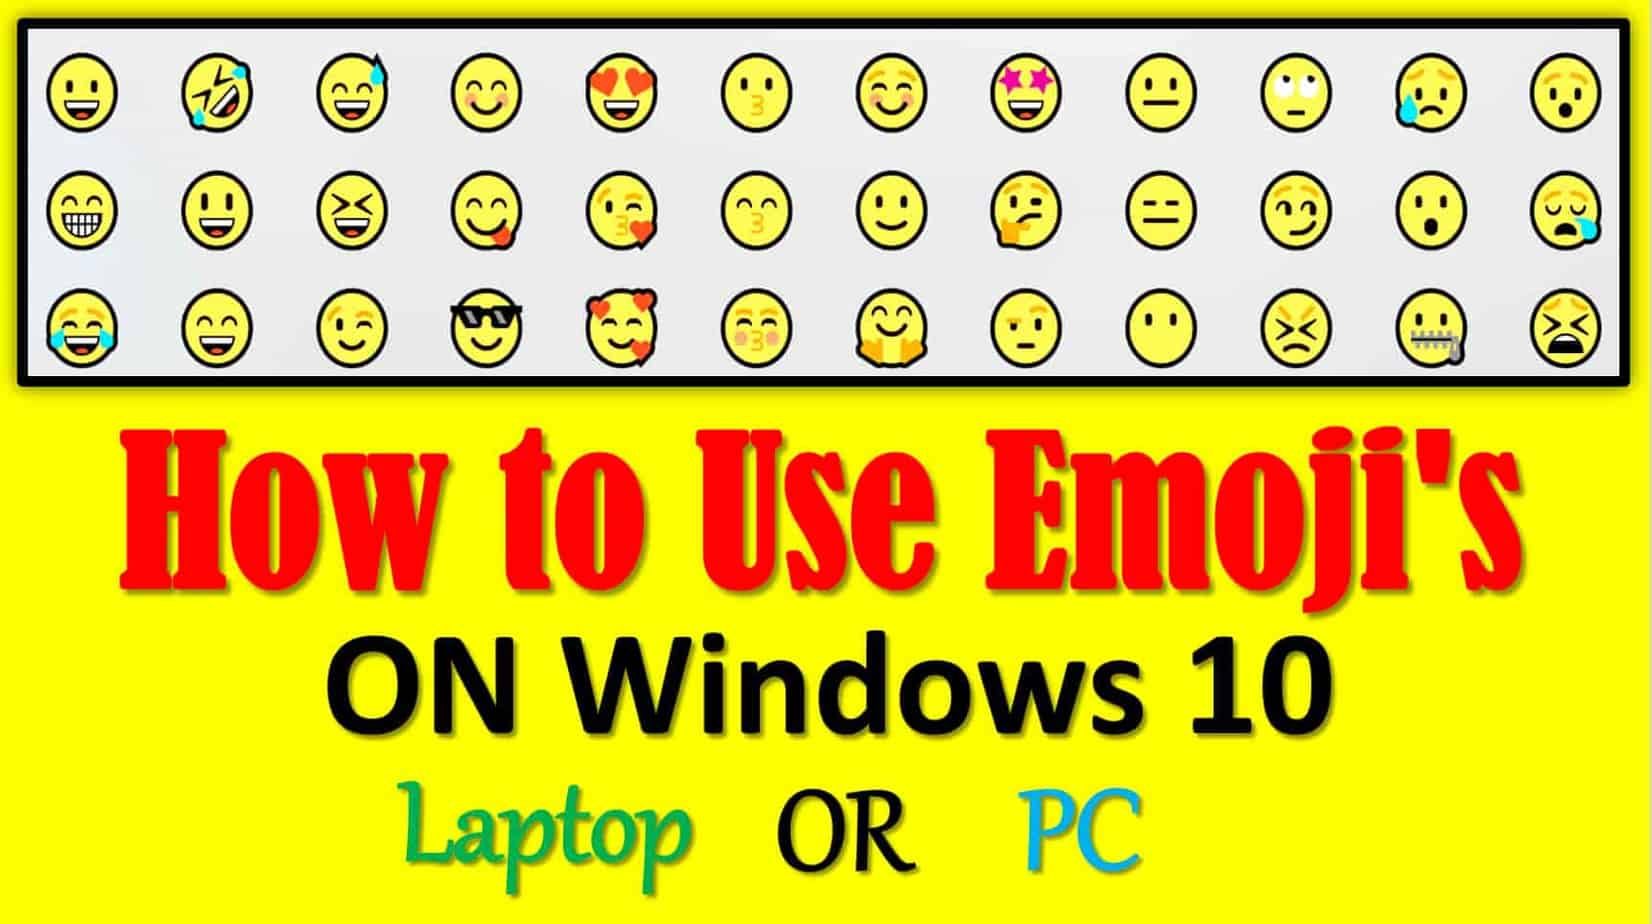 How to use emoji on laptop